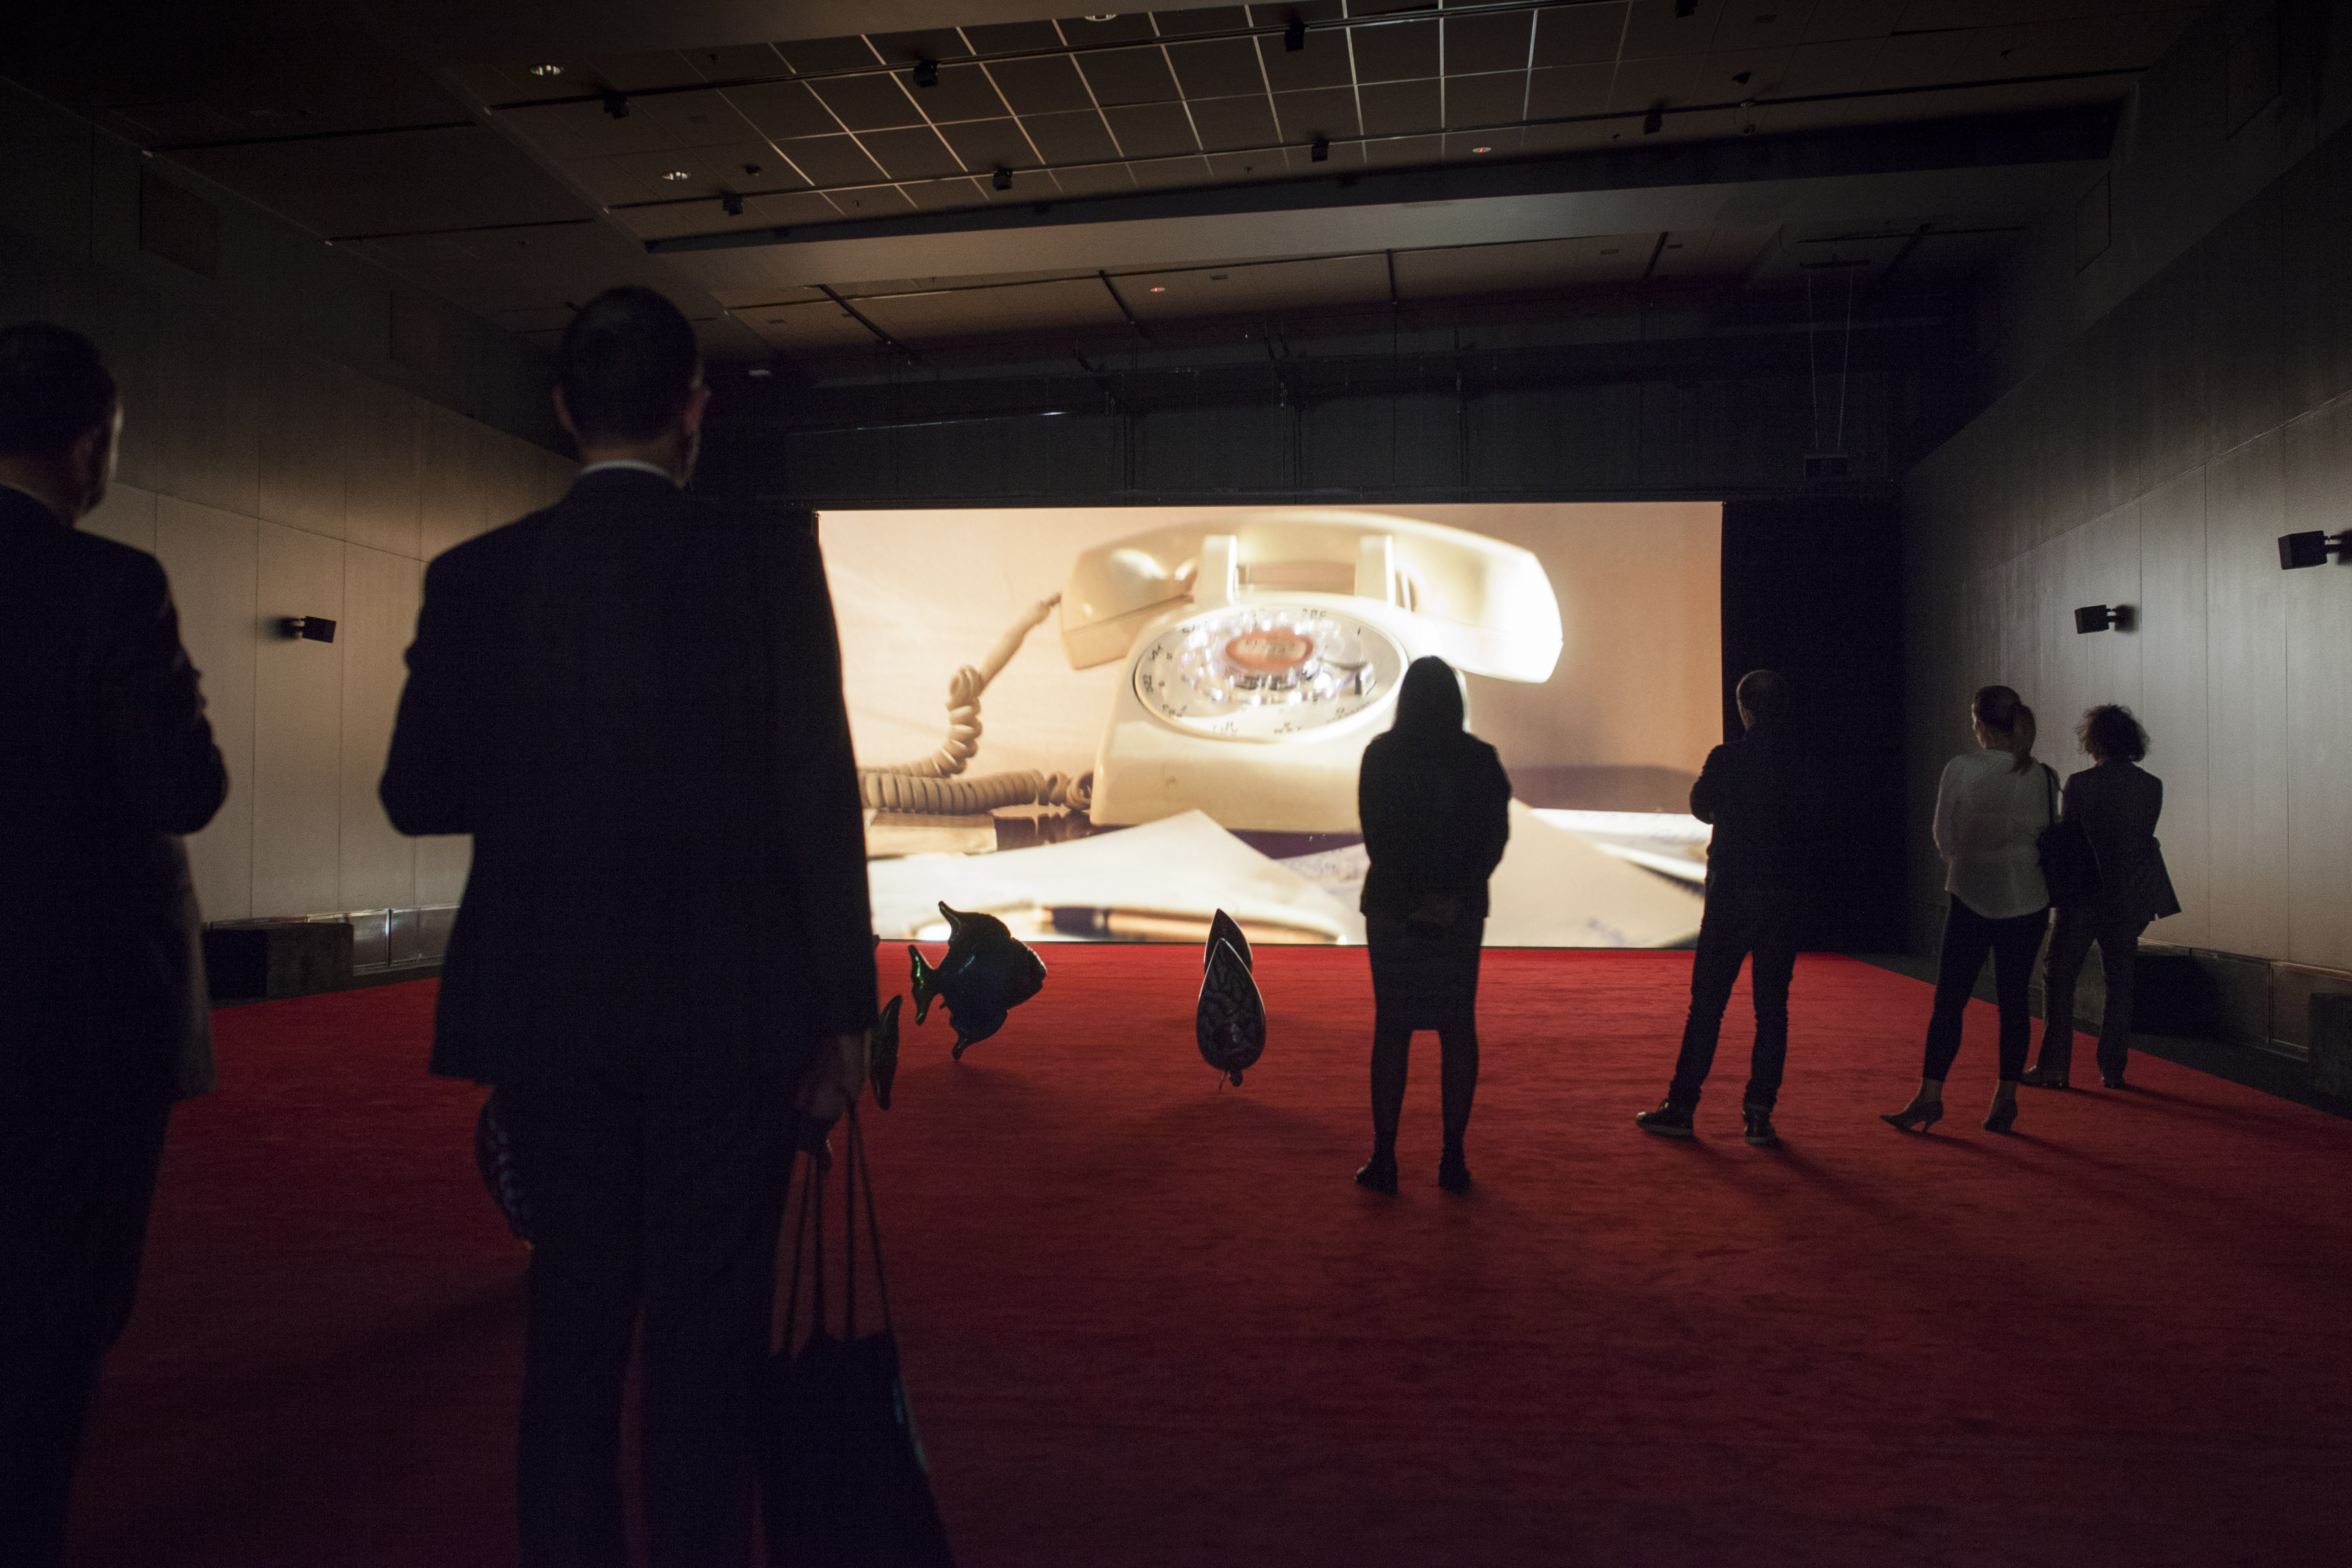 ACMI exhibition_Philippe Parreno - Thenabouts_photographer Charlie Kinross_gallery13.jpg